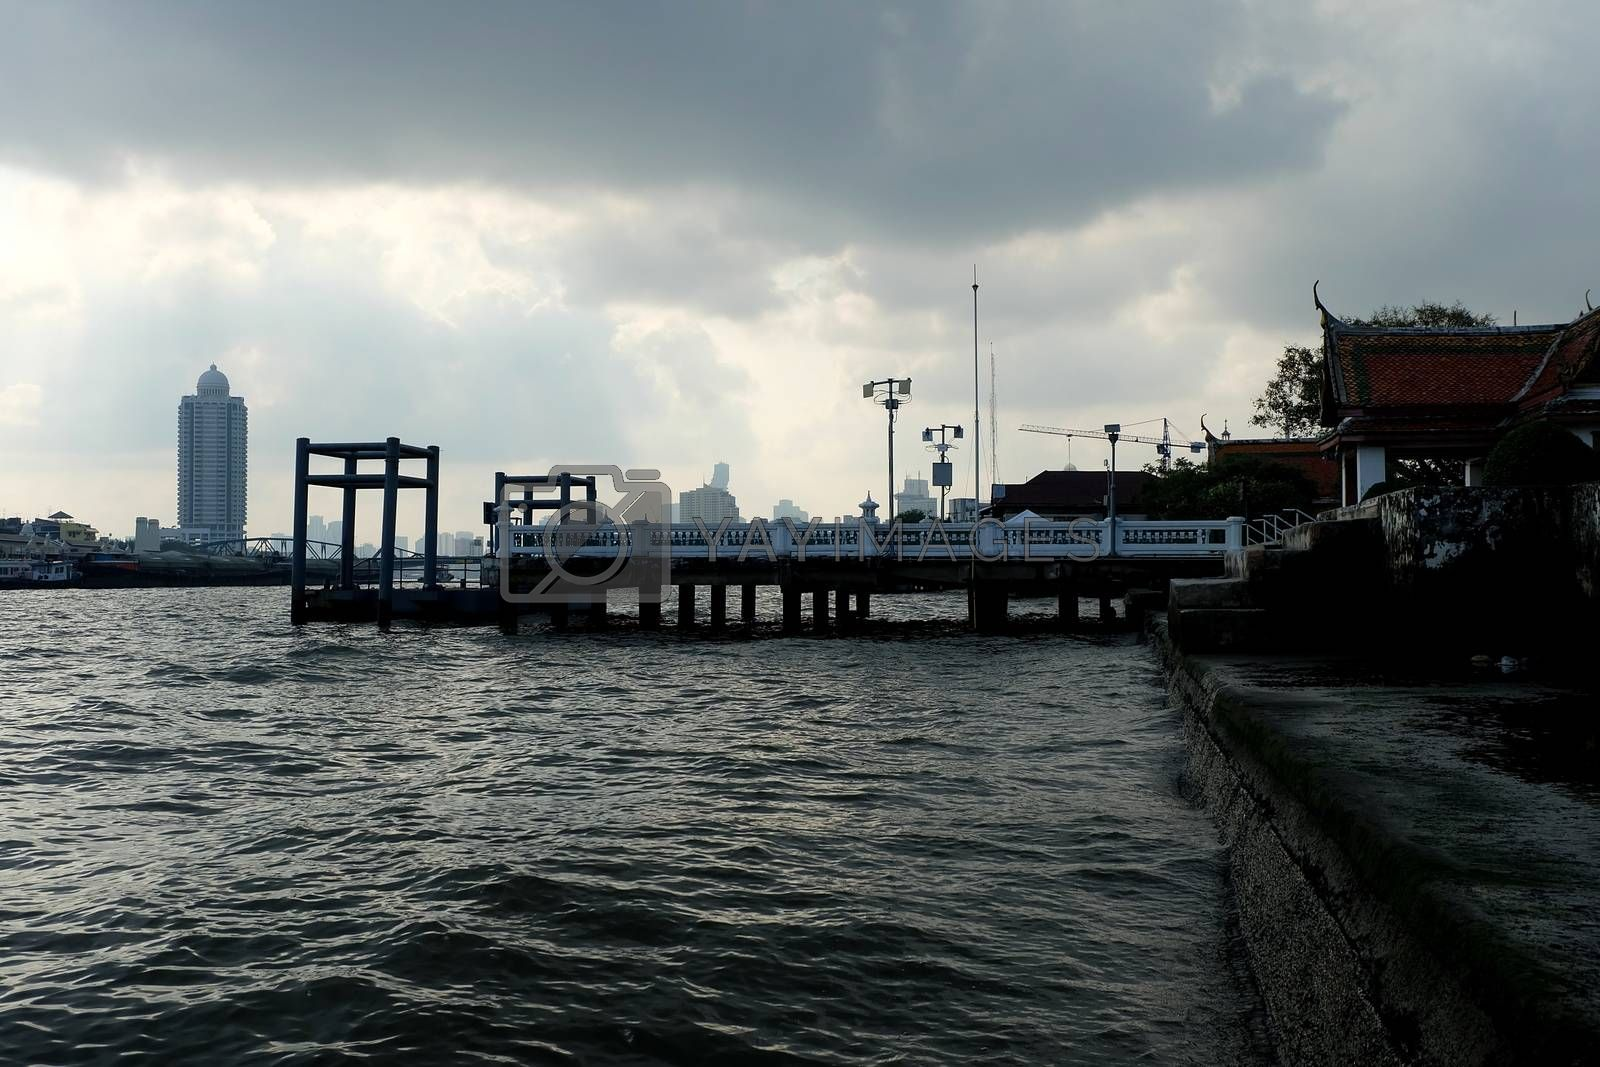 Scenery of Chaophraya River from Kalayanamit temple pier. Chaophraya River is the major river in Thailand.